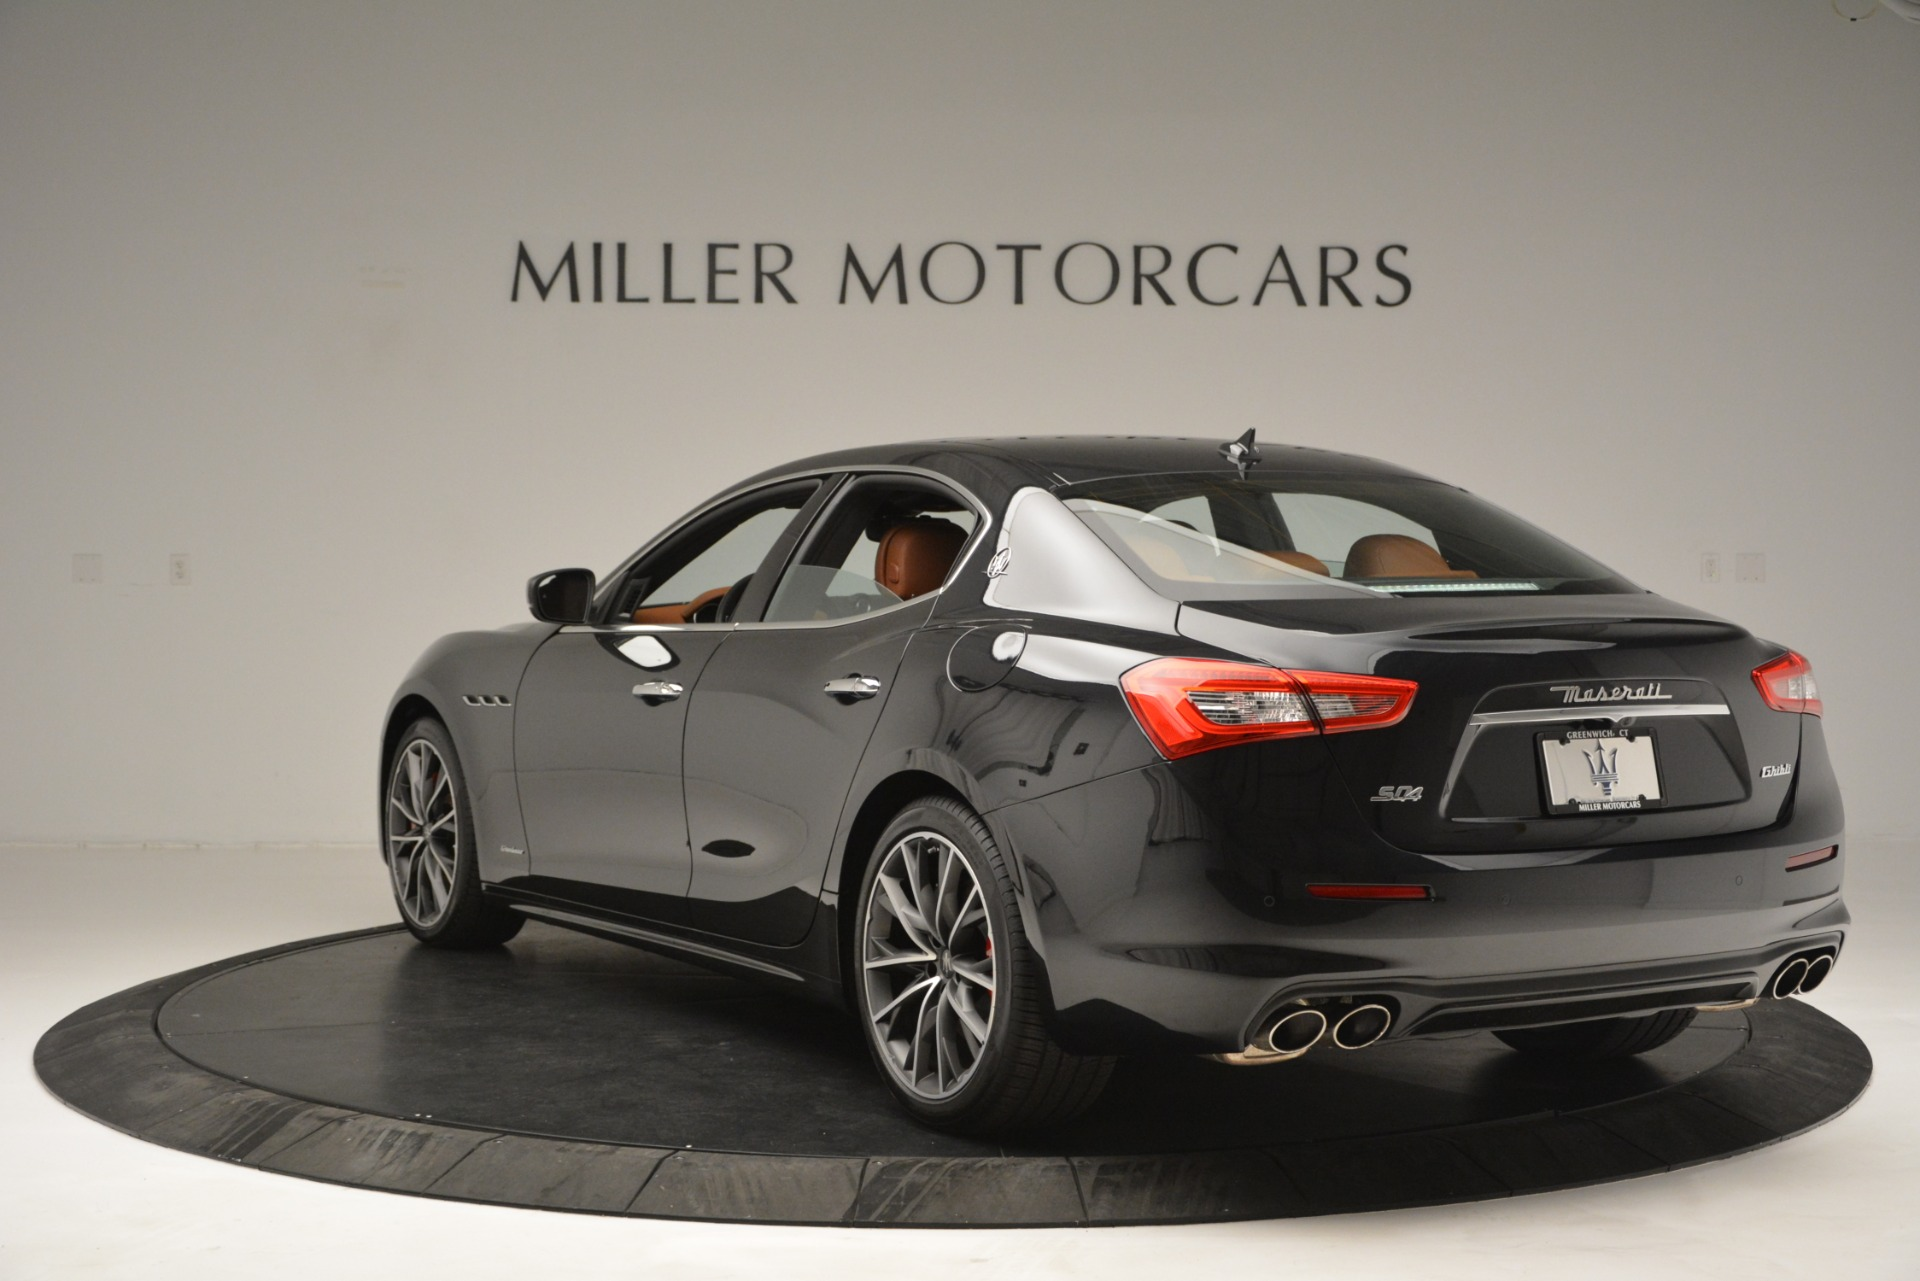 New 2019 Maserati Ghibli S Q4 GranLusso For Sale In Greenwich, CT. Alfa Romeo of Greenwich, M2223 2590_p5